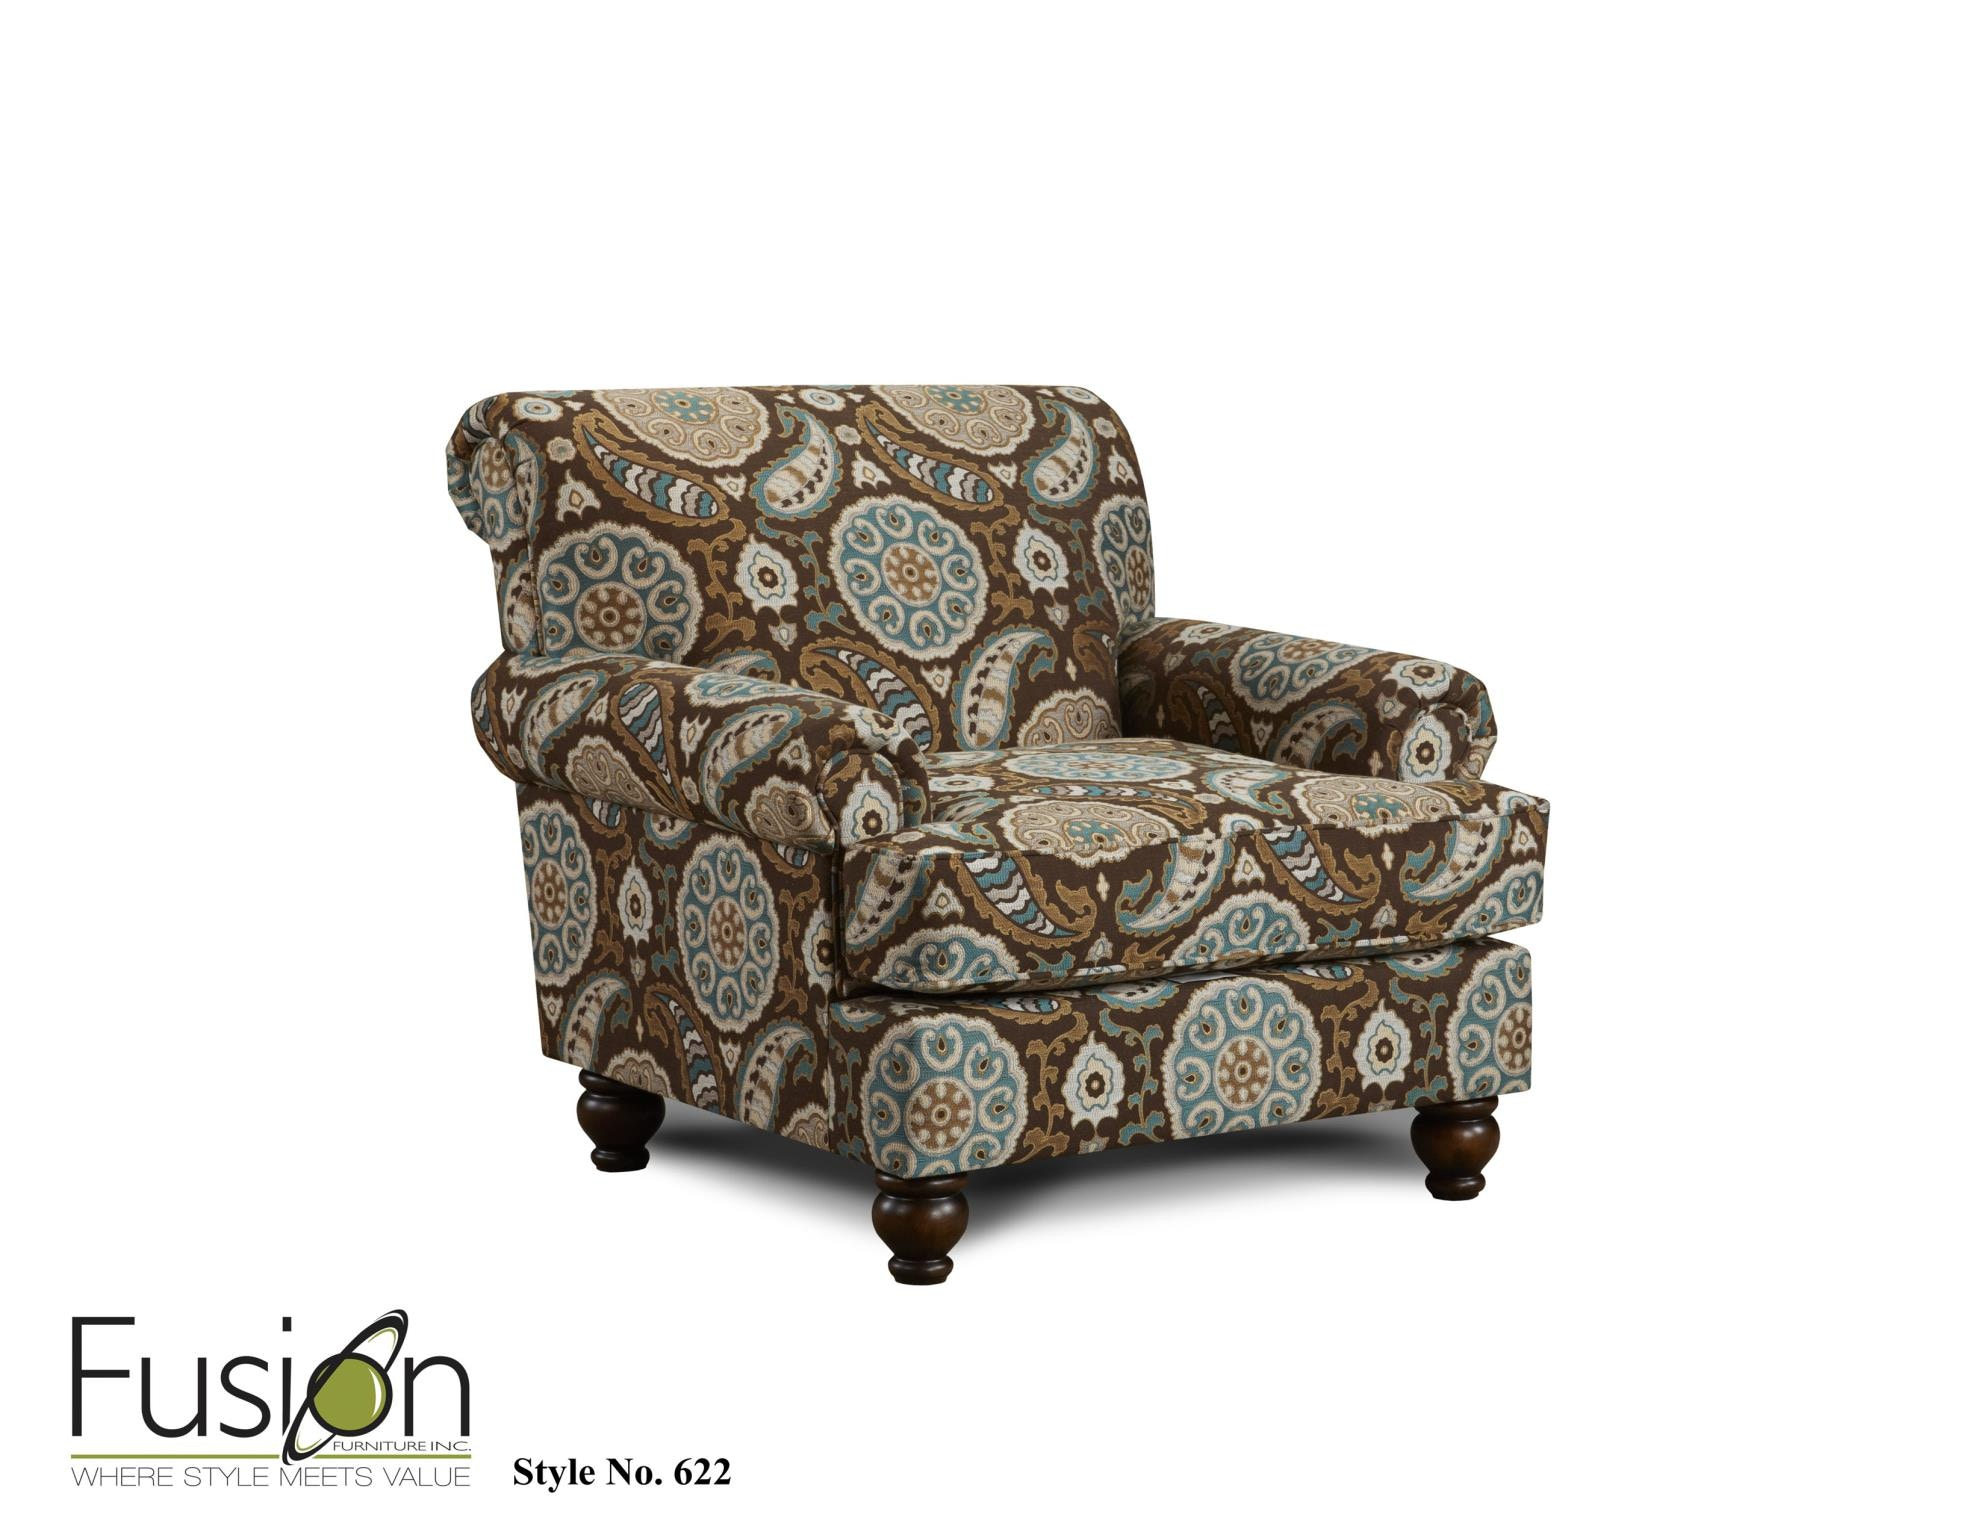 Fusion Living Room Chair 761358 At FurnitureLand